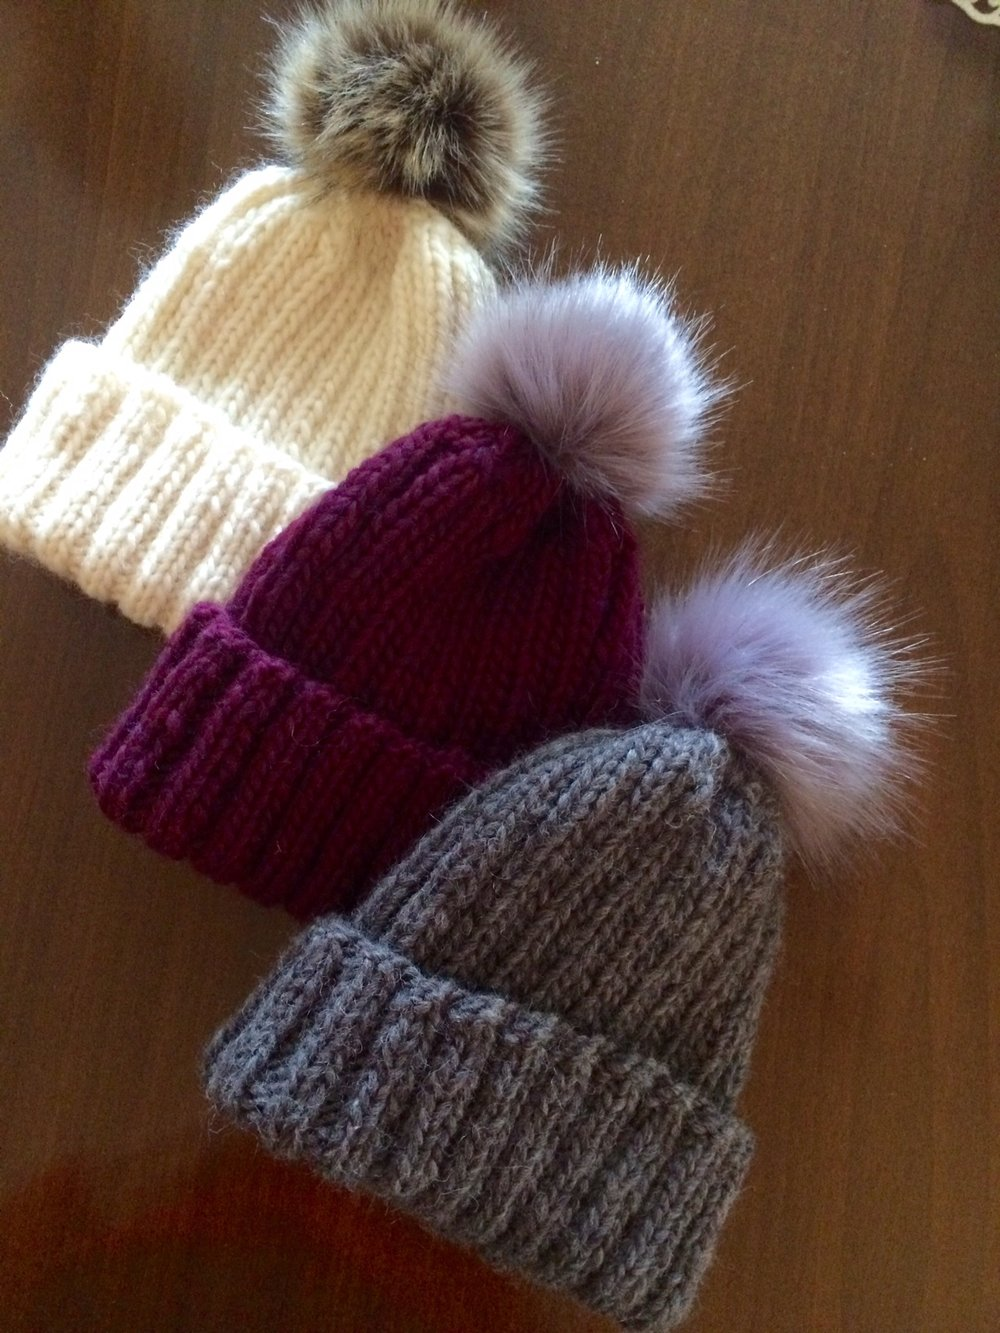 knitted hats.jpg